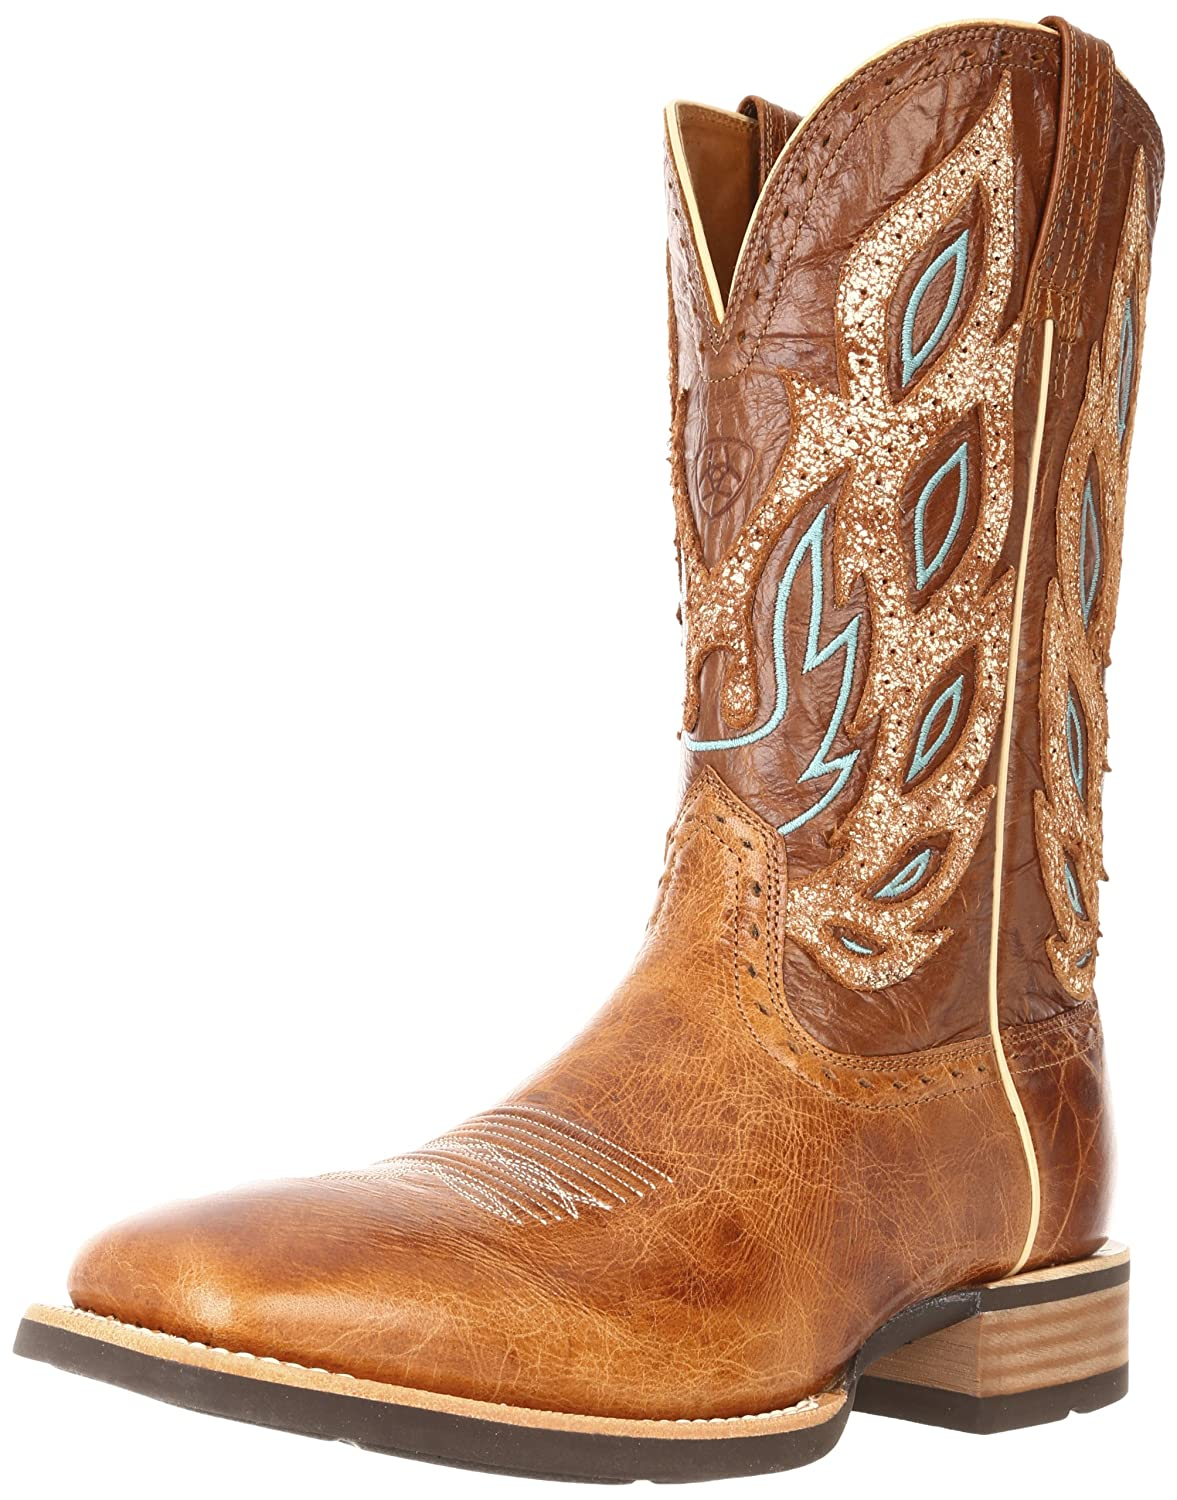 482b05d218a Ariat Men's Nighthawk Western Cowboy Boot